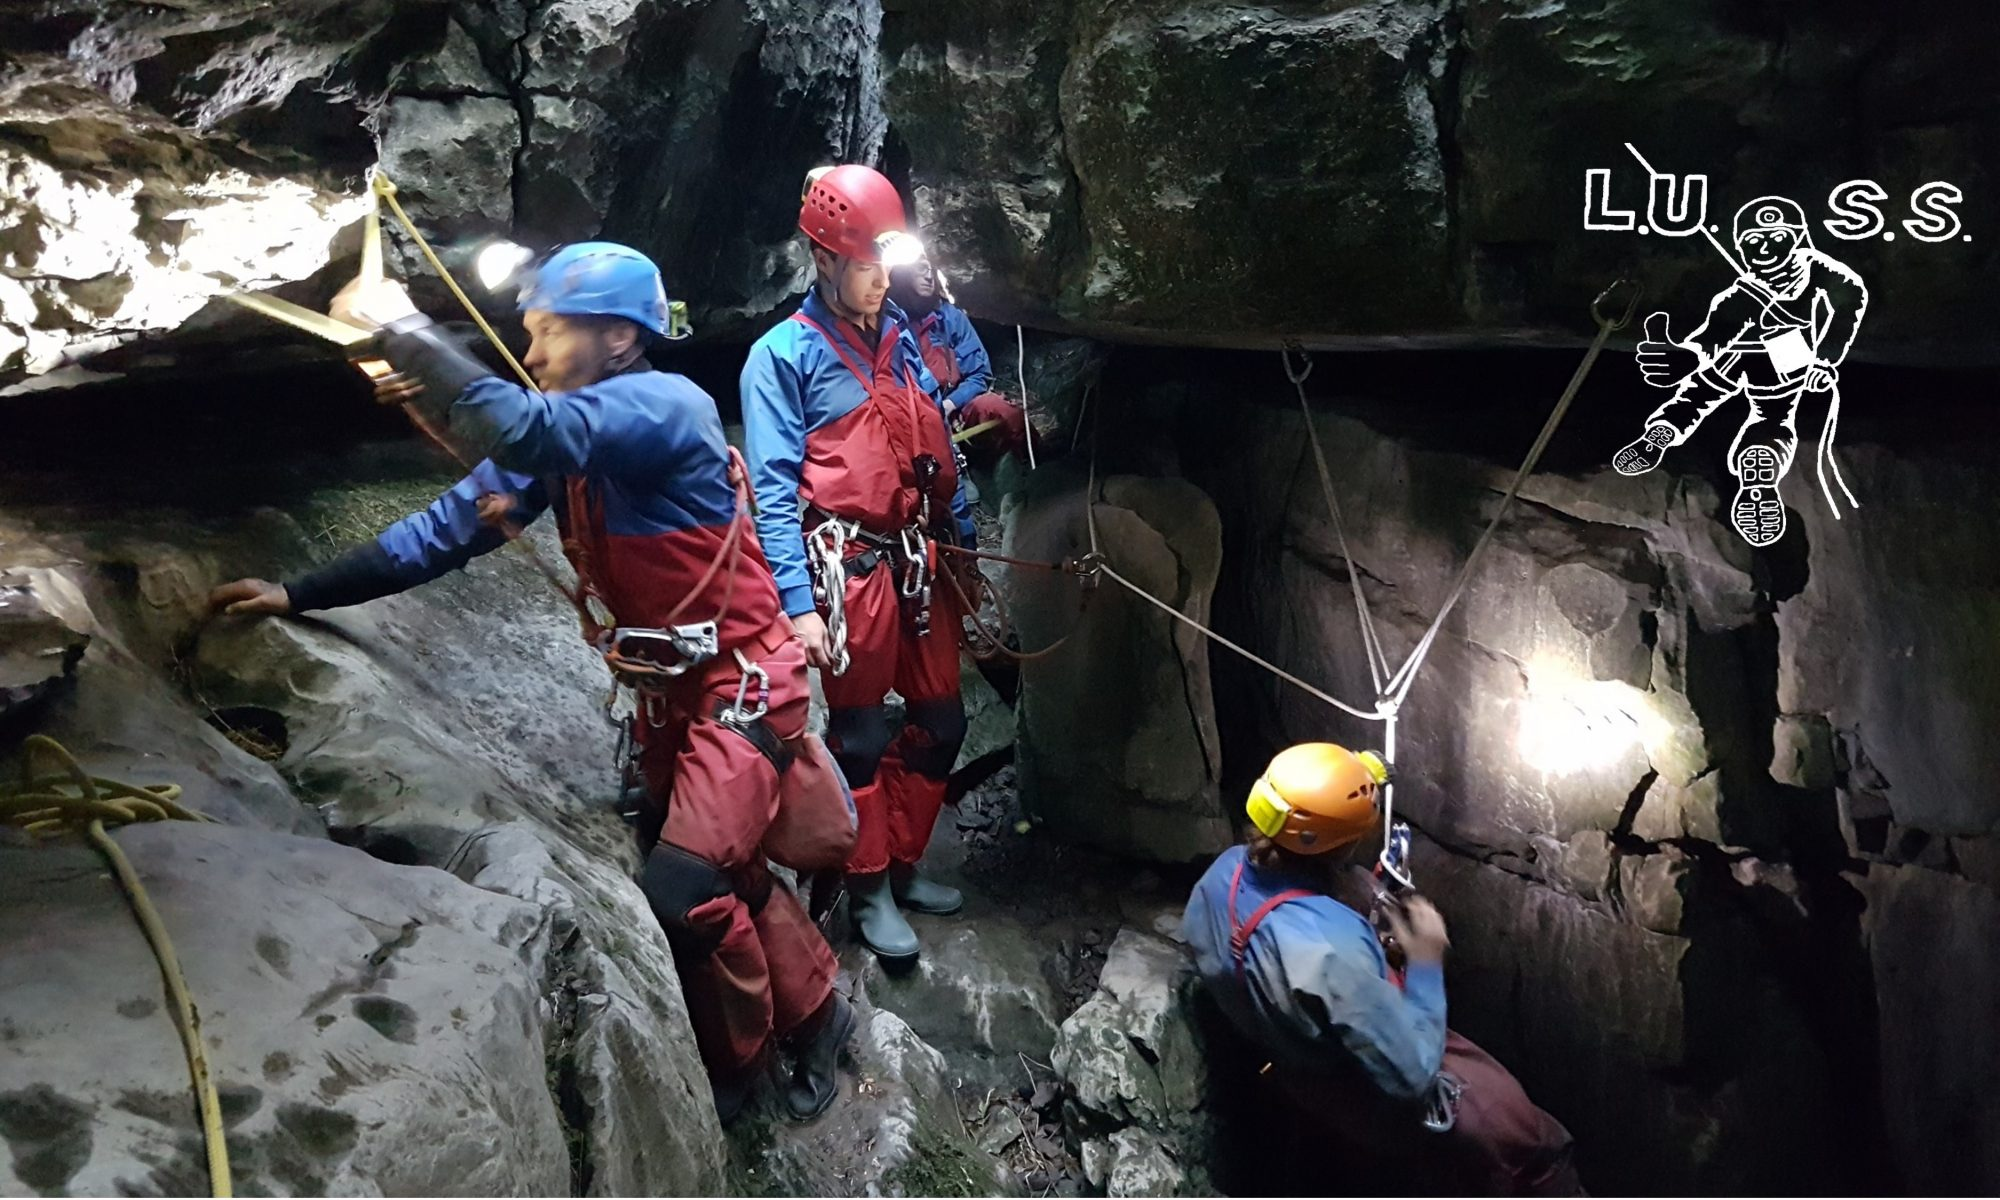 Lancaster University Speleological Society